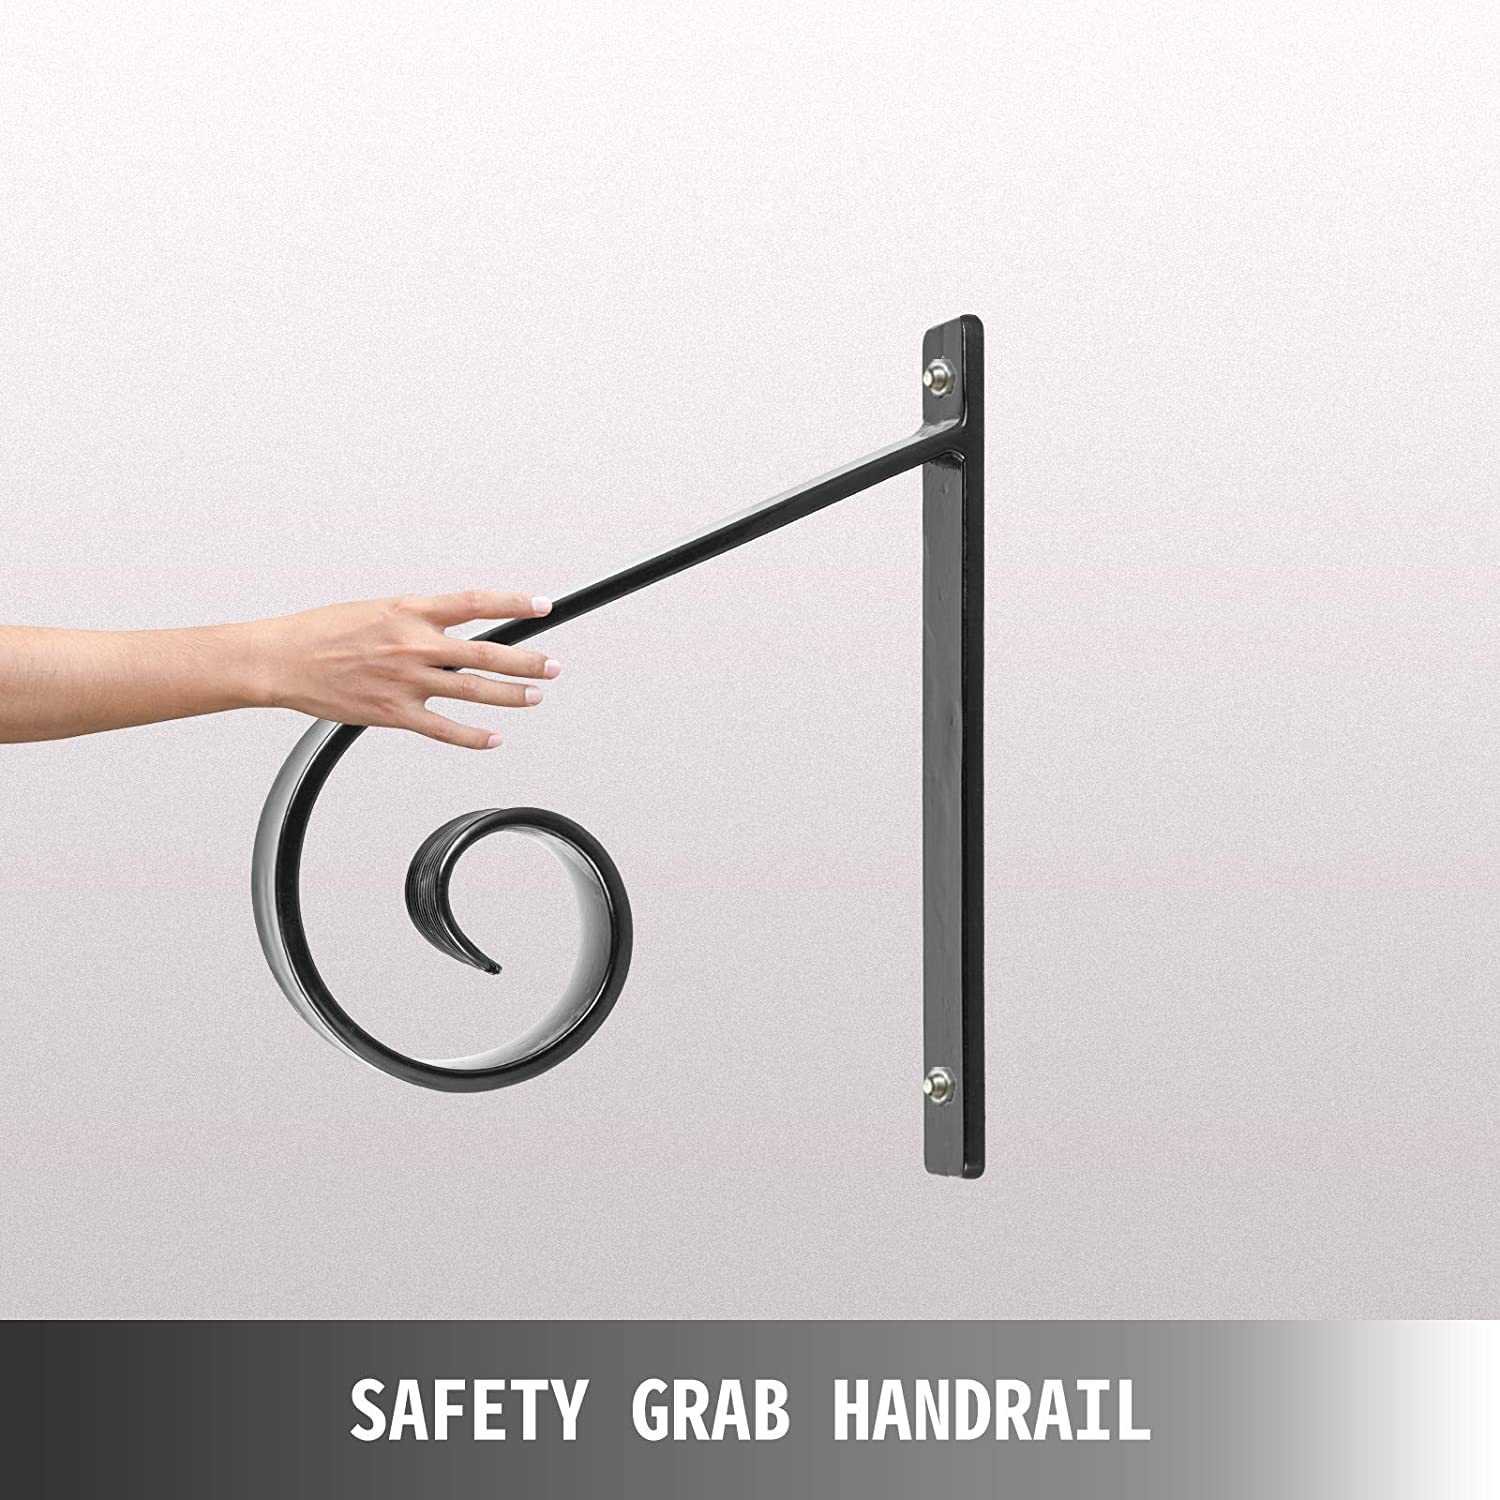 Happybuy Wrought Iron Handrail Wall Mounted Hand Railing 10L x 12H Inch Grab Support Bar Rail Porch Handrail Wrought Hand Rail Staircase Railing 1-2 Stairs Steps